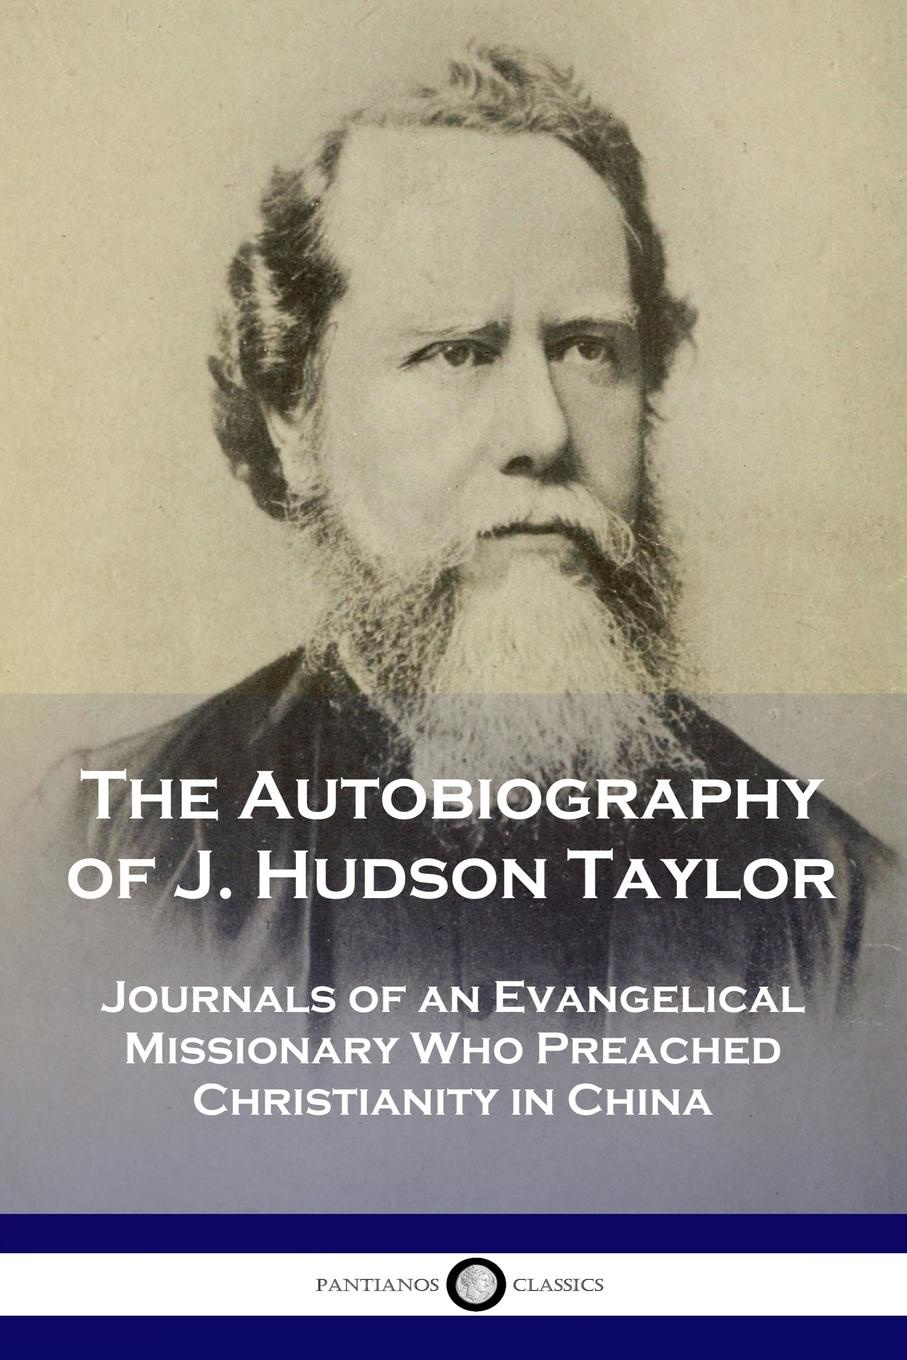 J. Hudson Taylor The Autobiography of J. Hudson Taylor. Journals of an Evangelical Missionary Who Preached Christianity in China трос буксировочный шнурком канатный с крюками 5 т длина 5 м